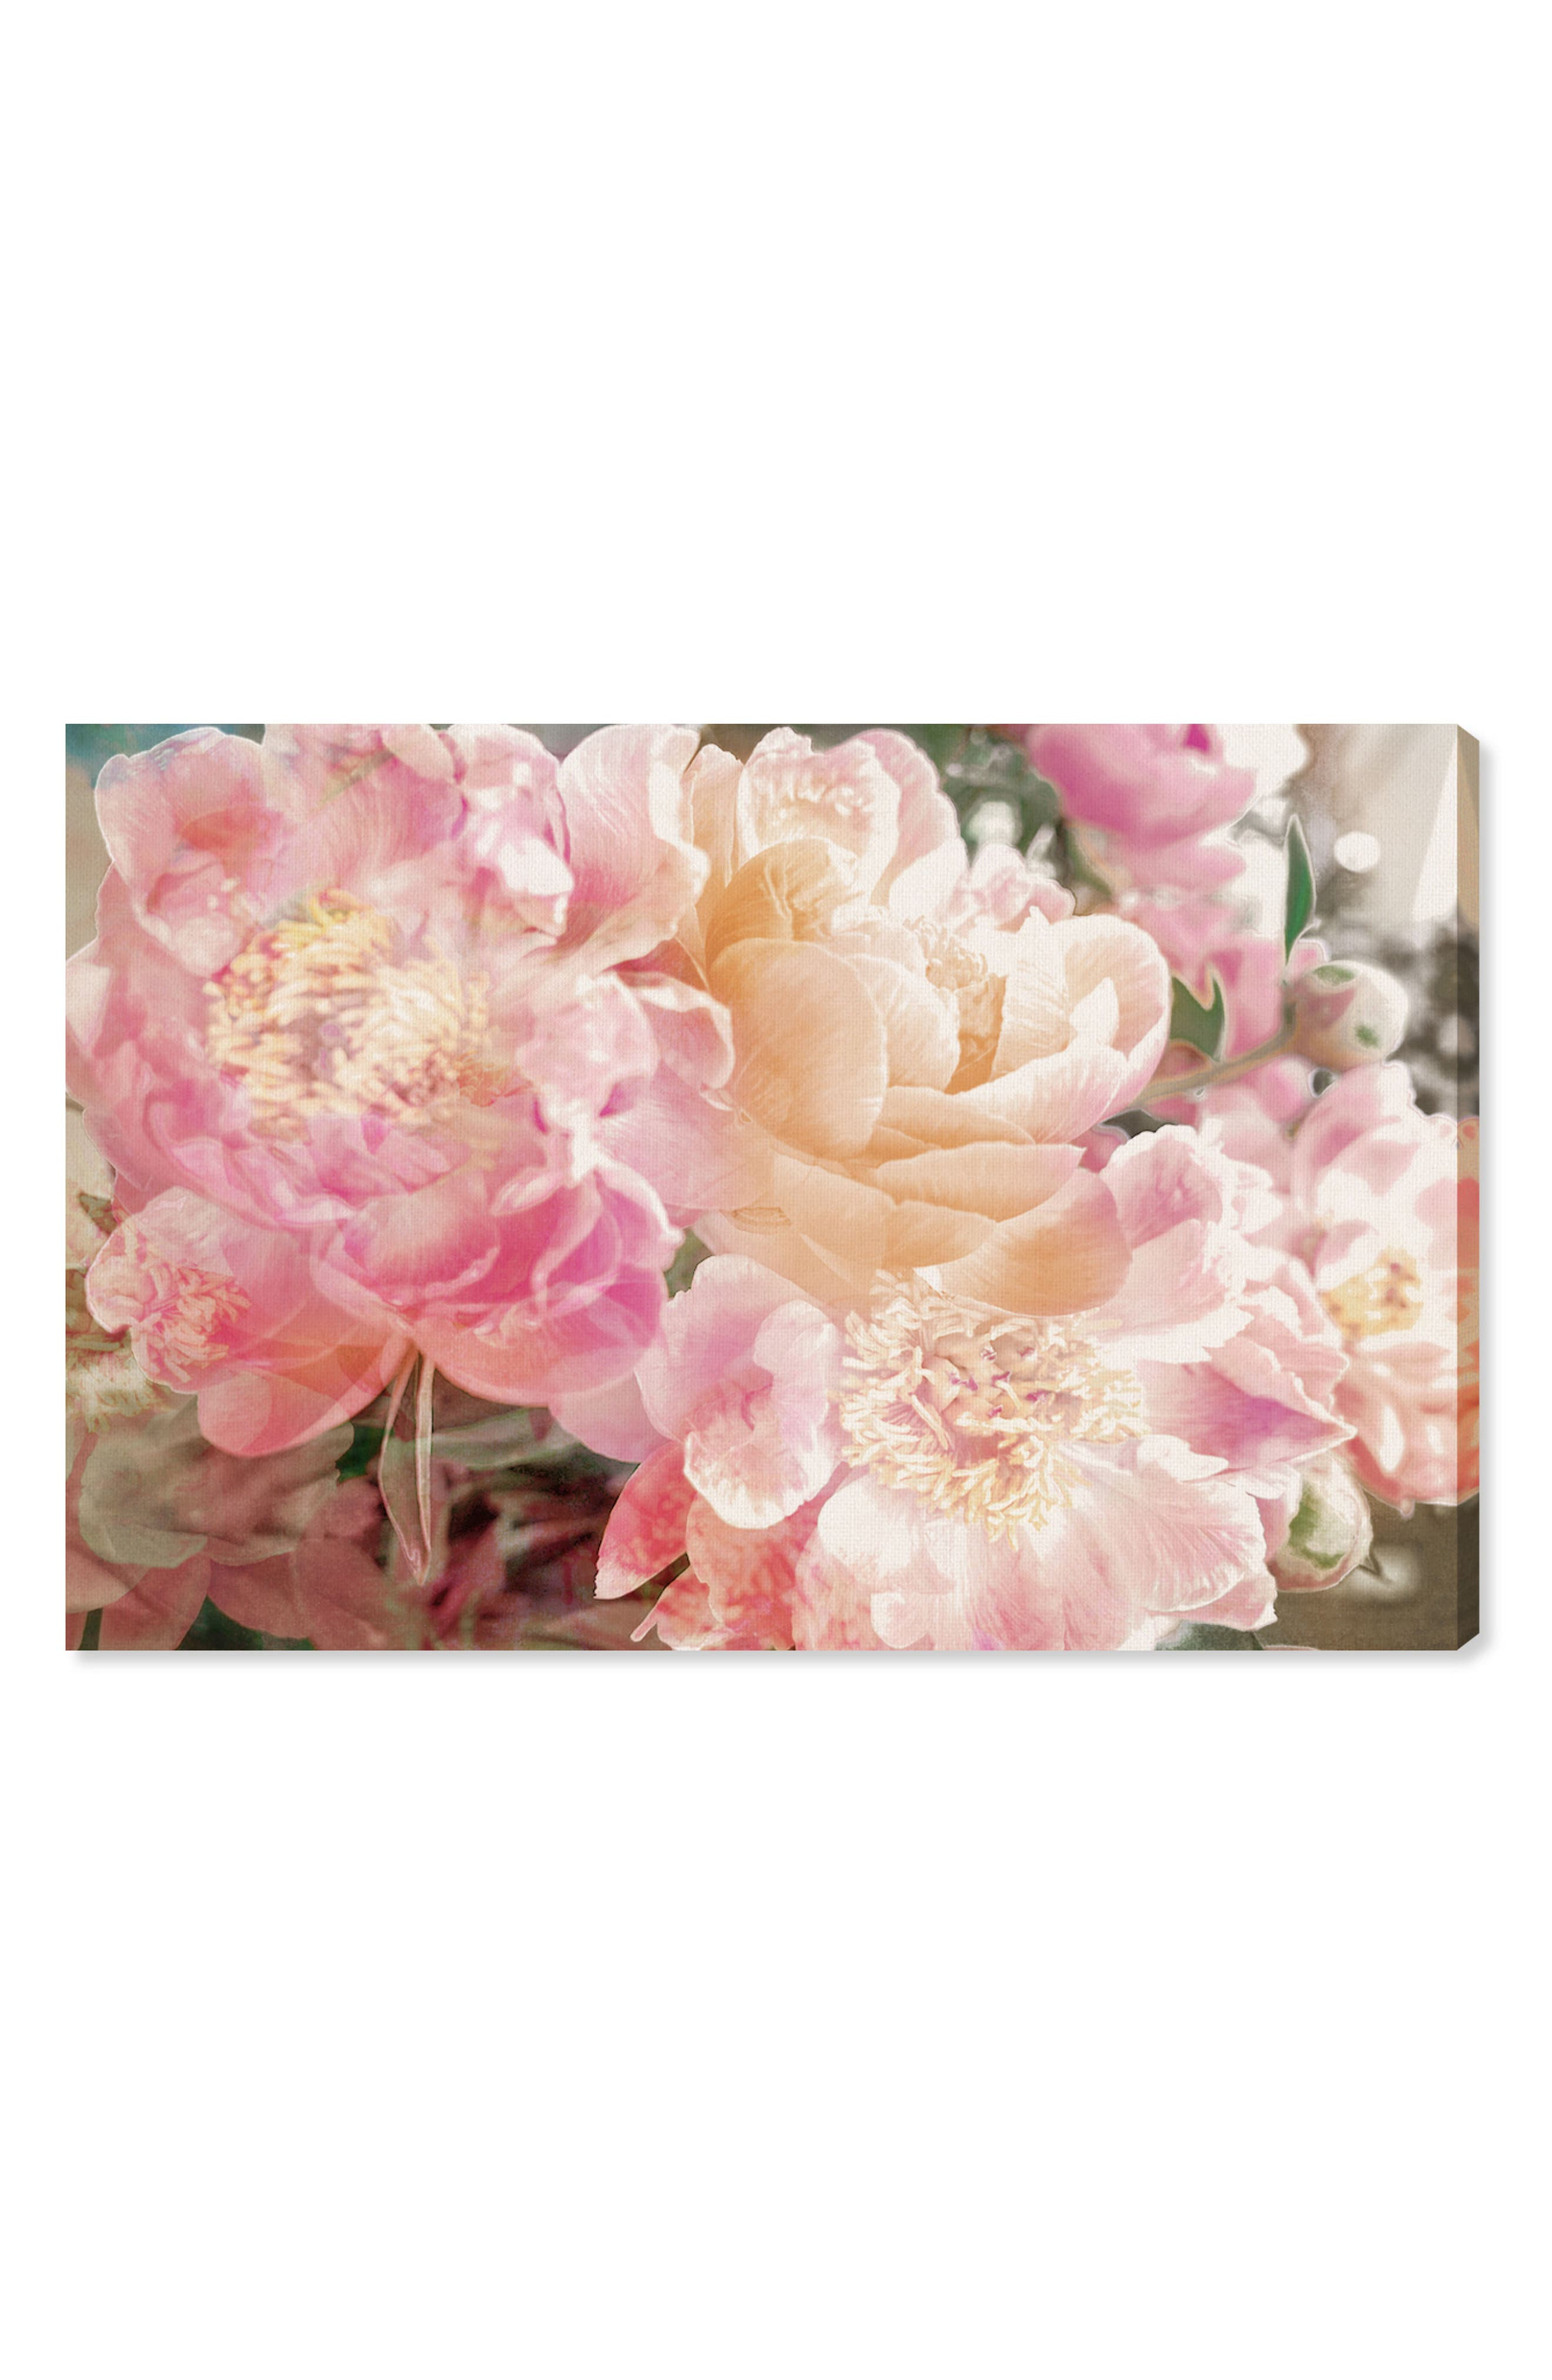 Main Image - Oliver Gal Peonies Canvas Wall Art